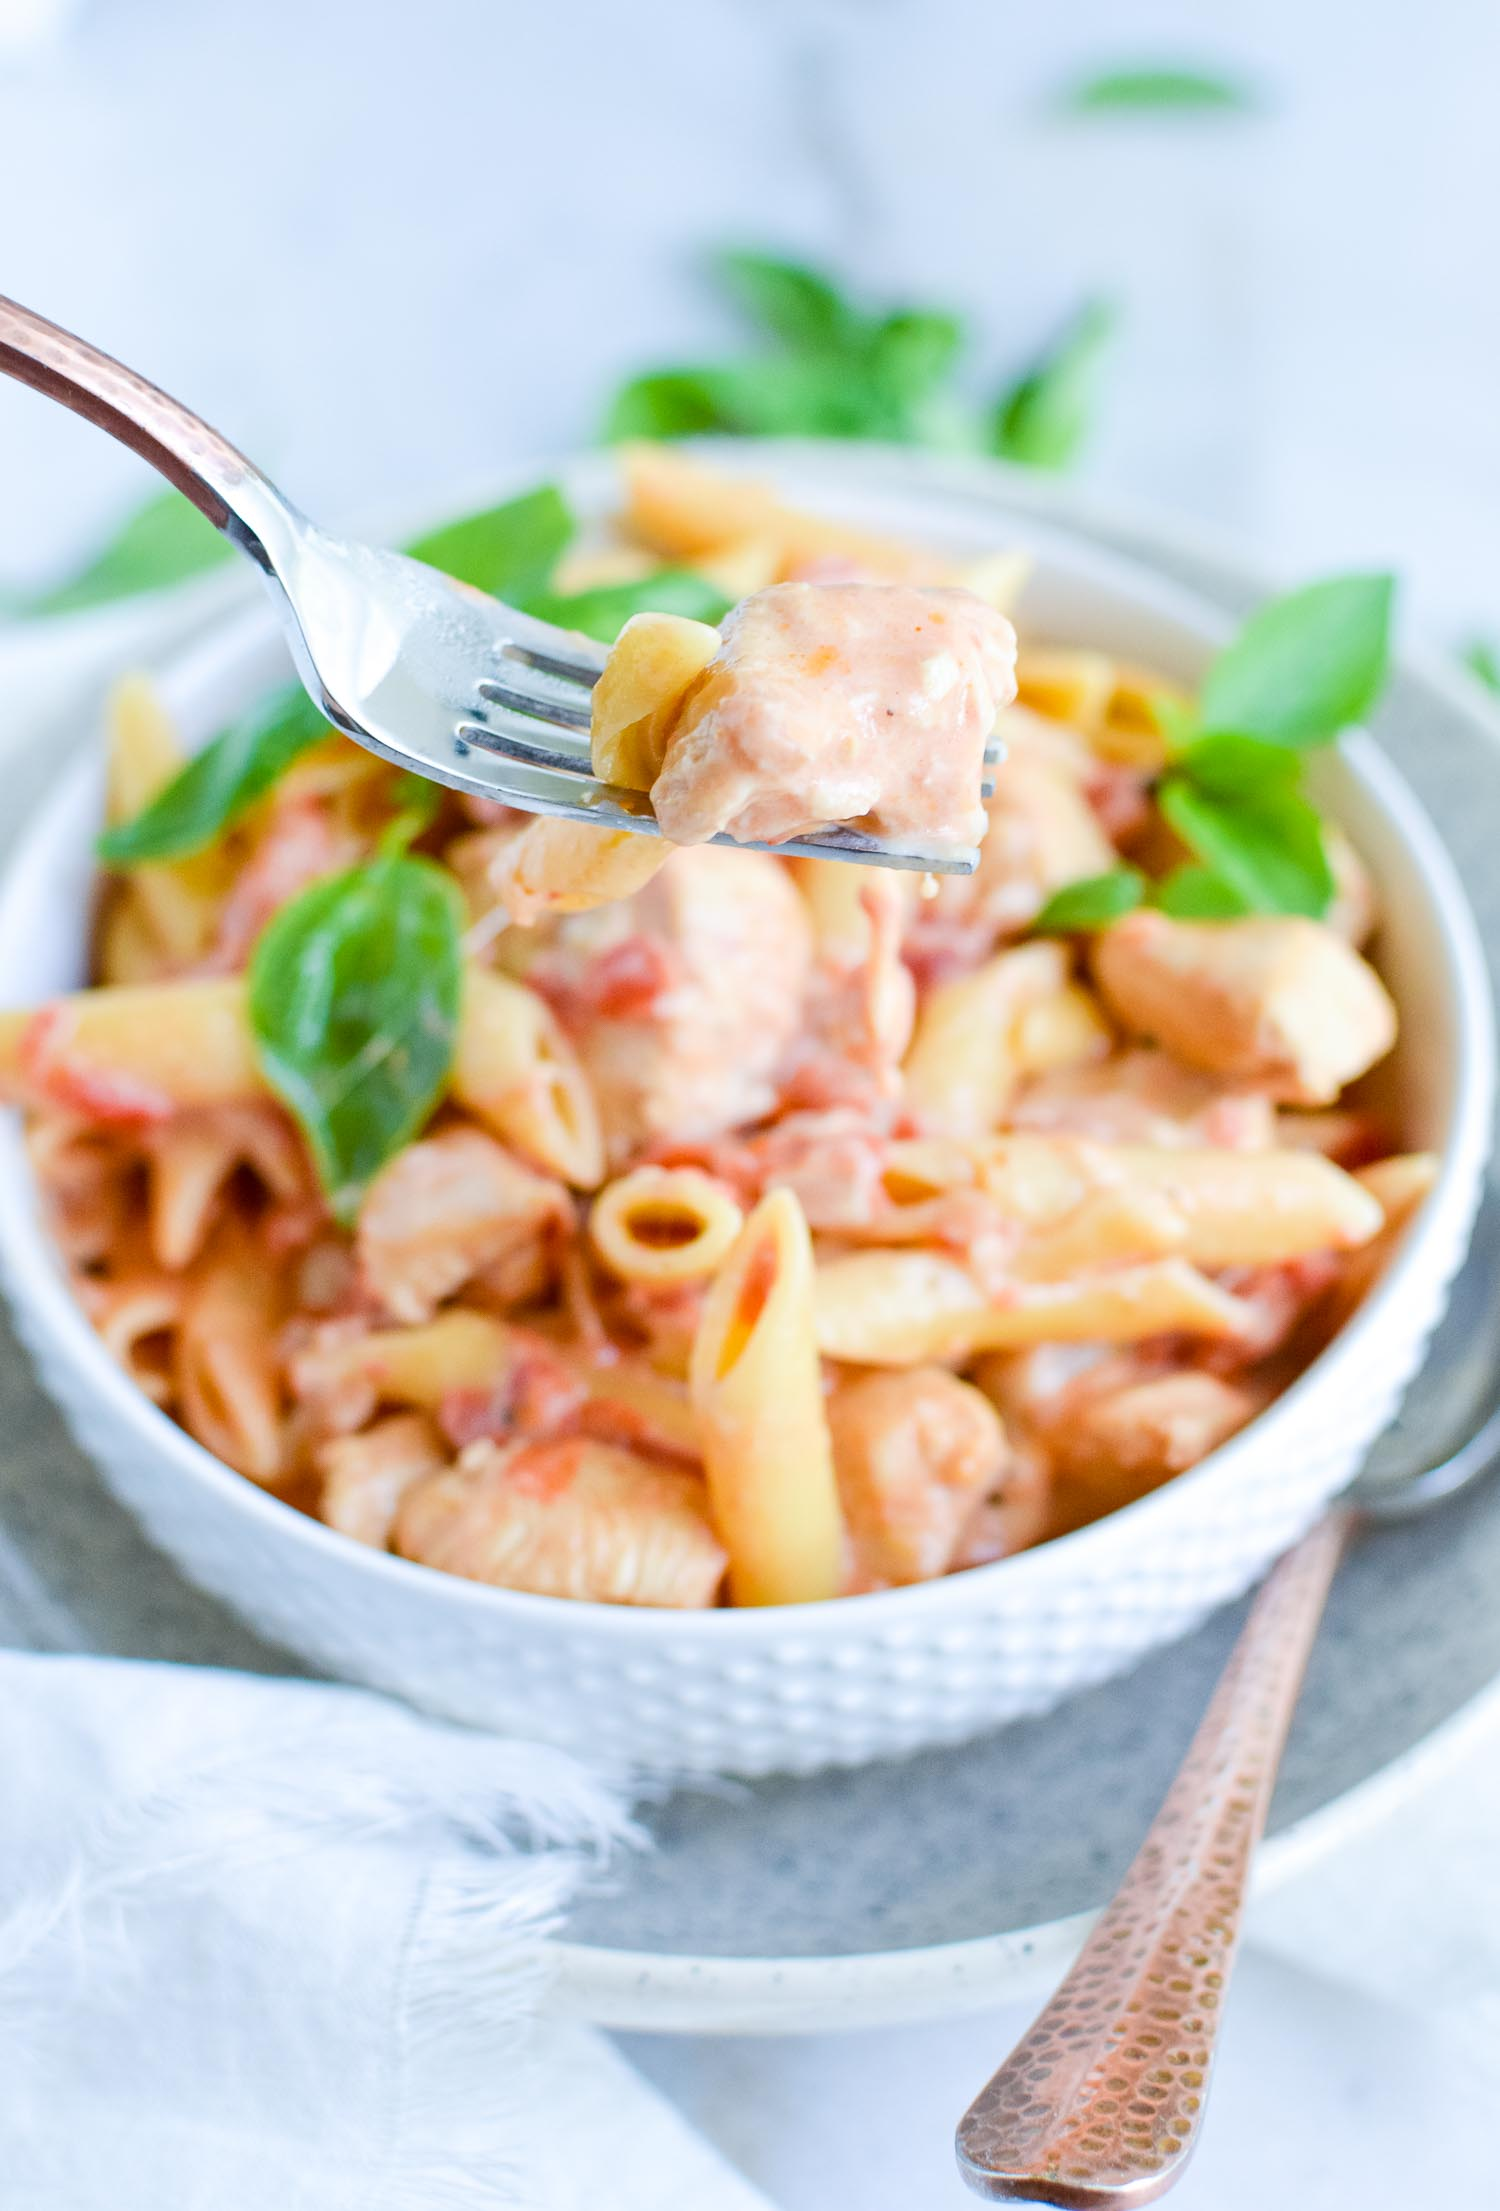 A white bowl inside a speckled bowl full of pasta, cheese, tomatoes and spices with a silver fork lifted up with a piece of chicken on it.